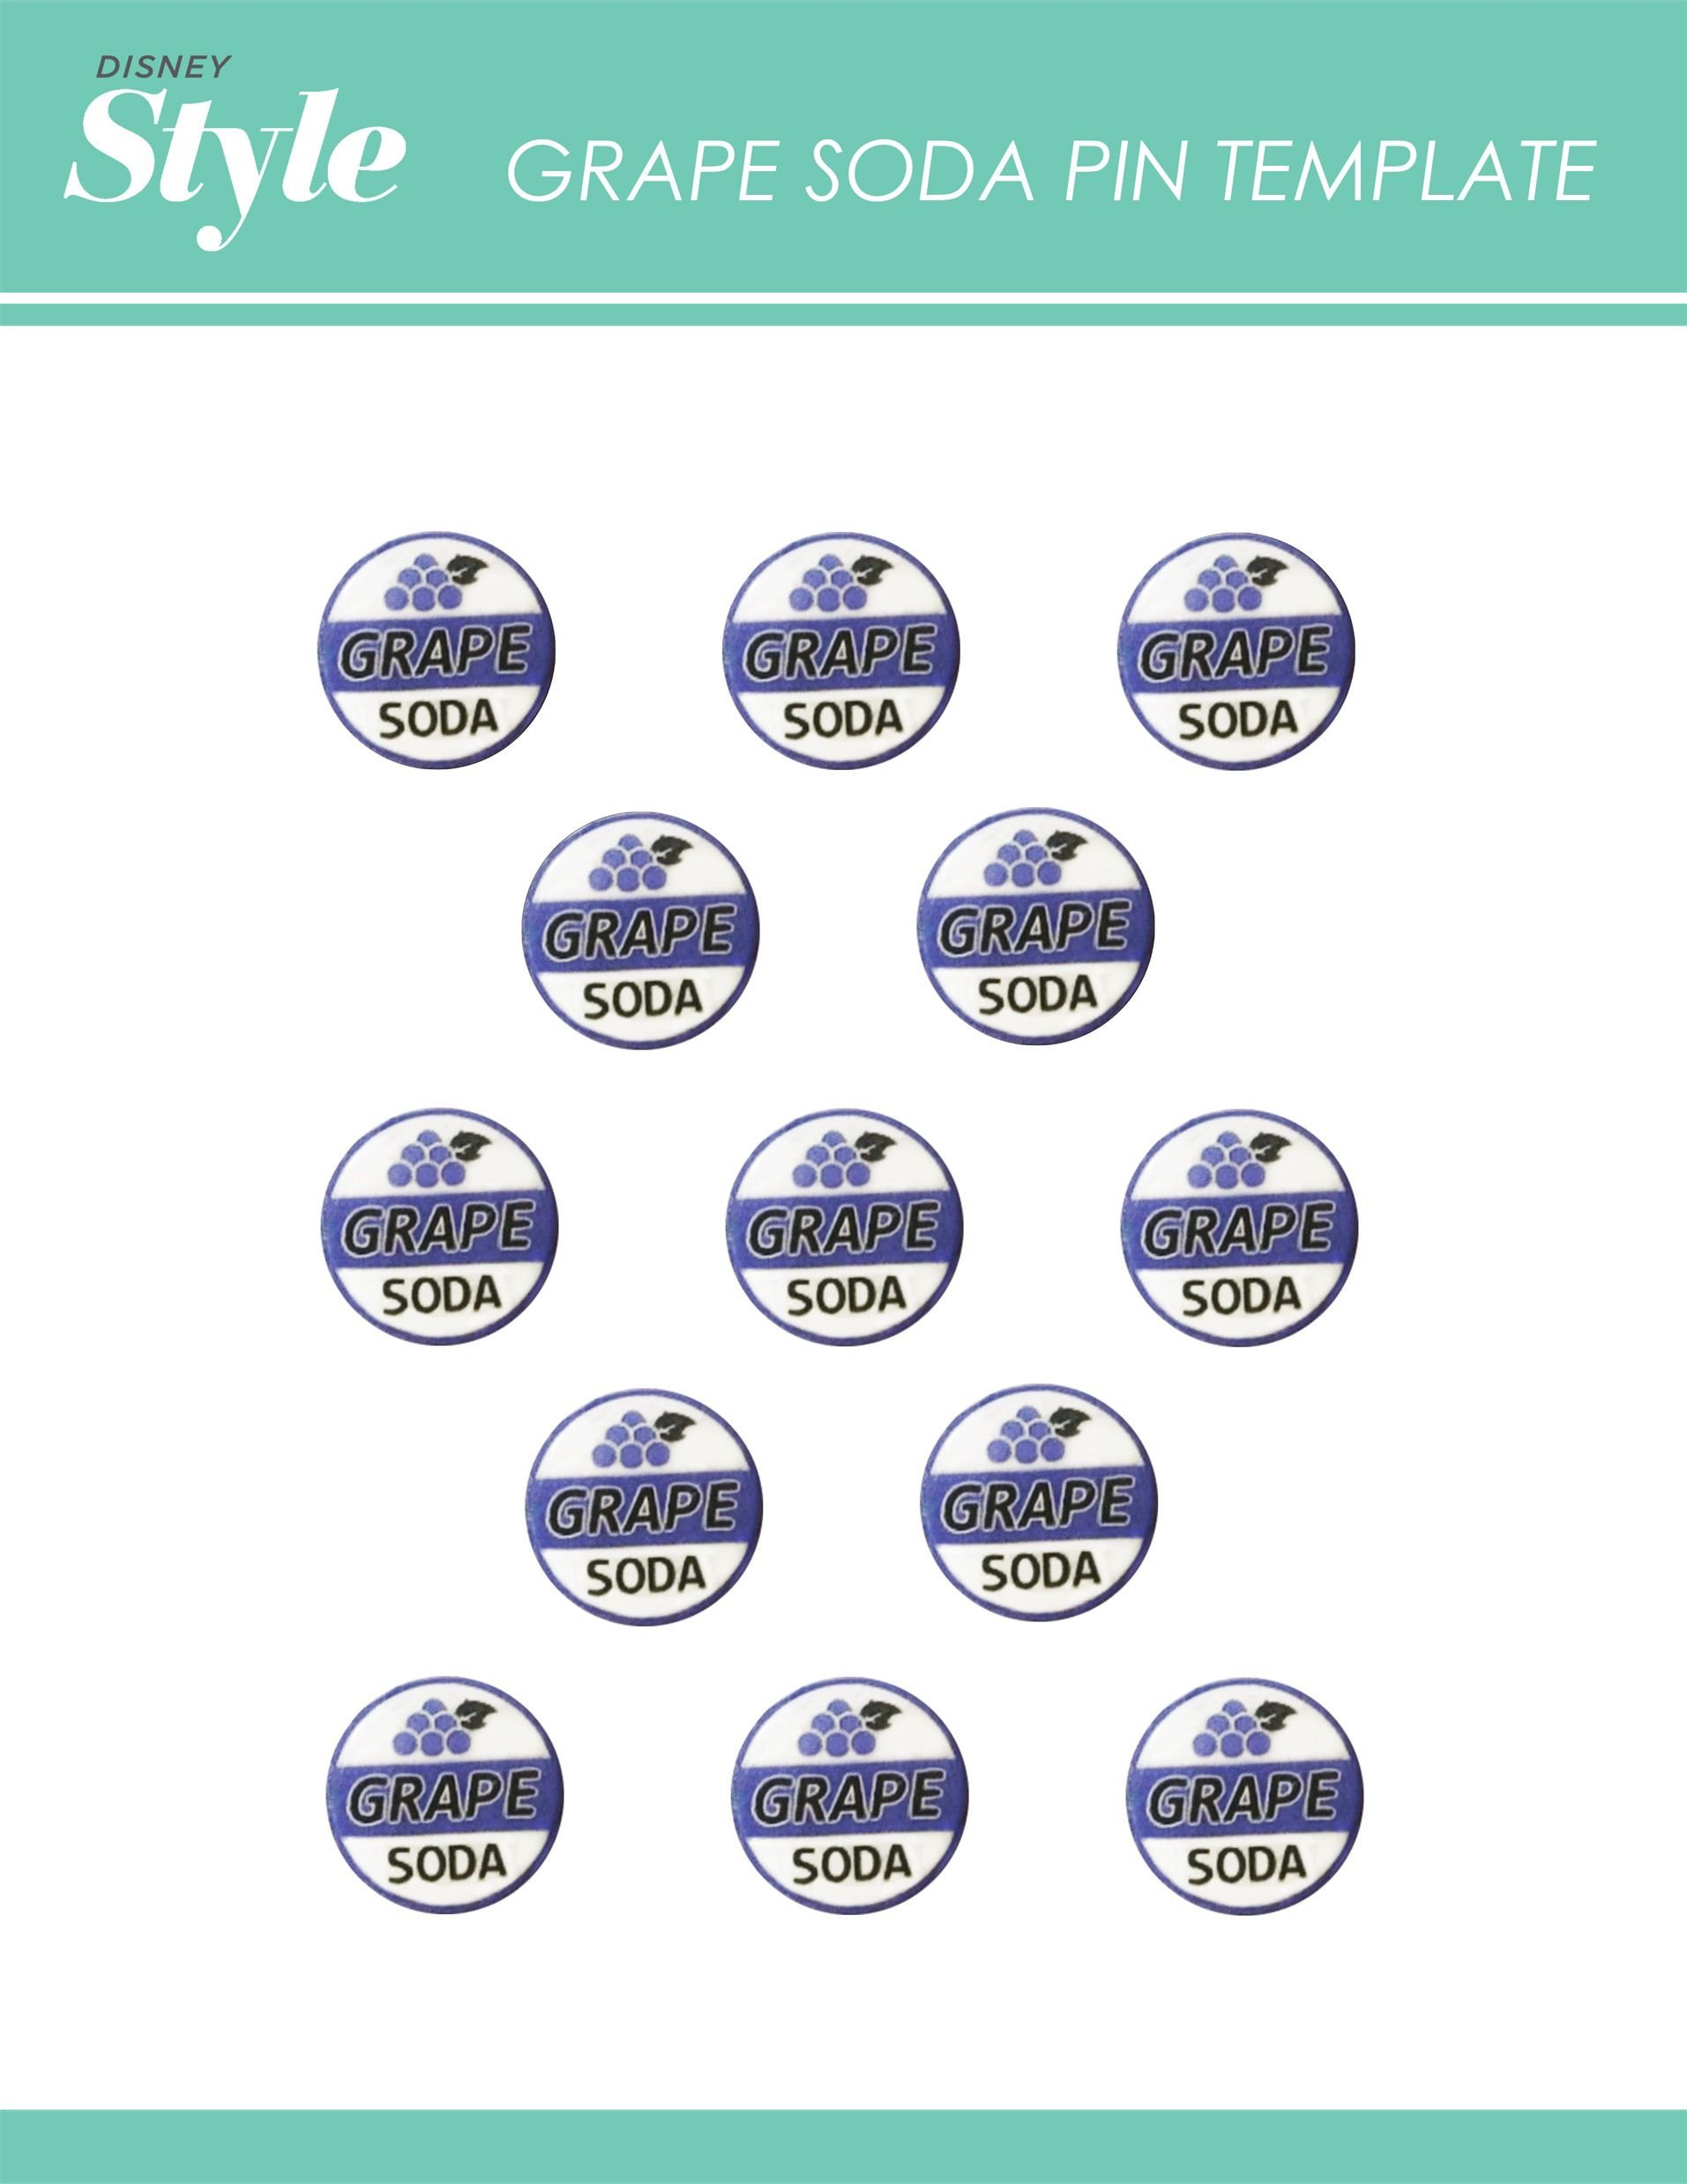 Soda Can Template Printable Up Movie Night Printable Templates for Grape soda Pin and